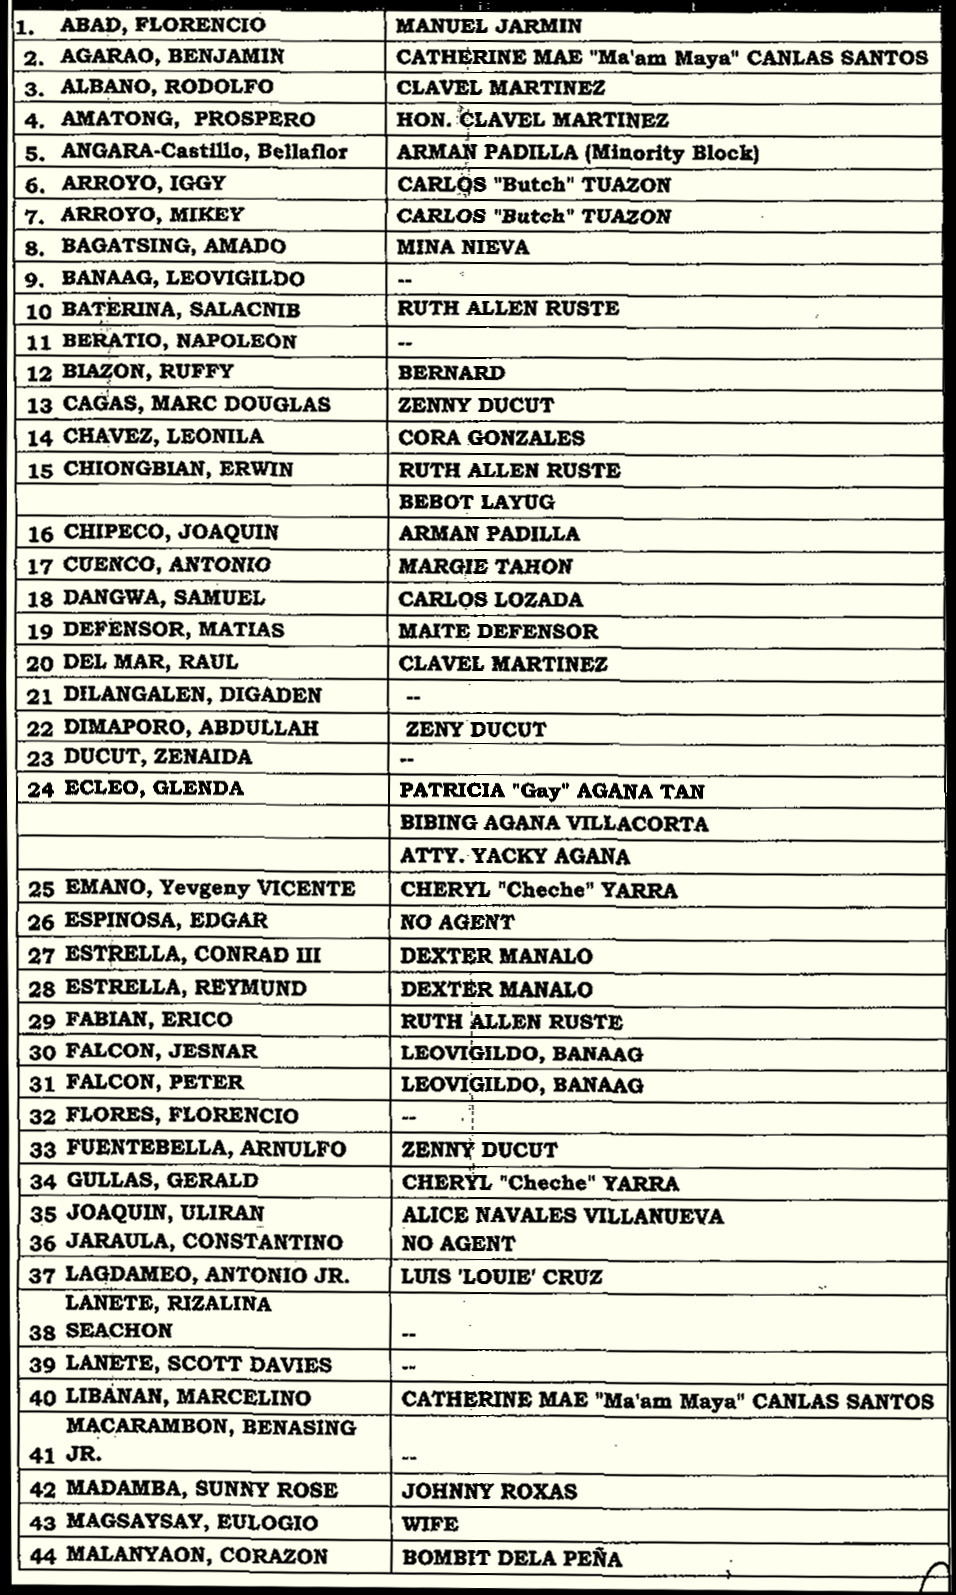 Former and incumbent members of the house of representatives listed in